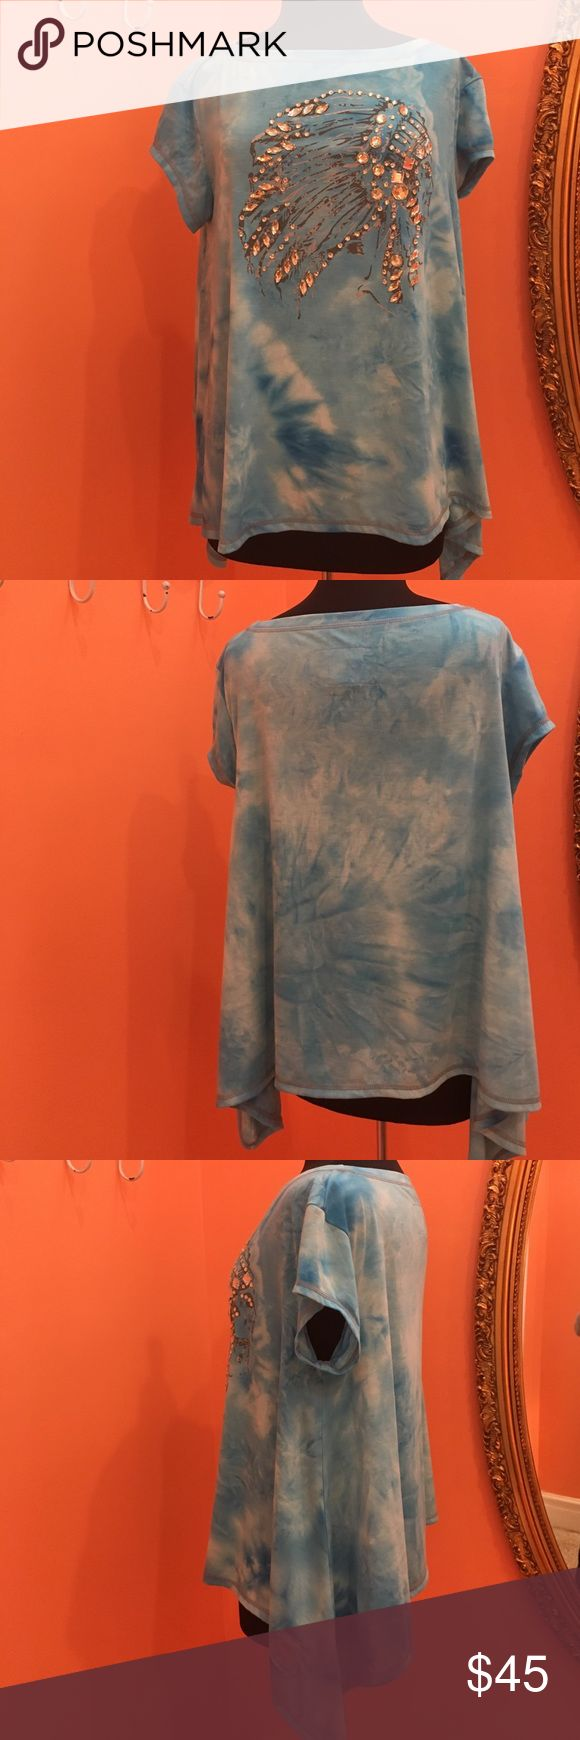 Double D Ranch top Double D Ranch top with shark bite hem. Tie dye background with crystal embelished chief head on the front. No tags but never worn. 94%polyester  6%spandex Double D Ranch Tops Tees - Short Sleeve